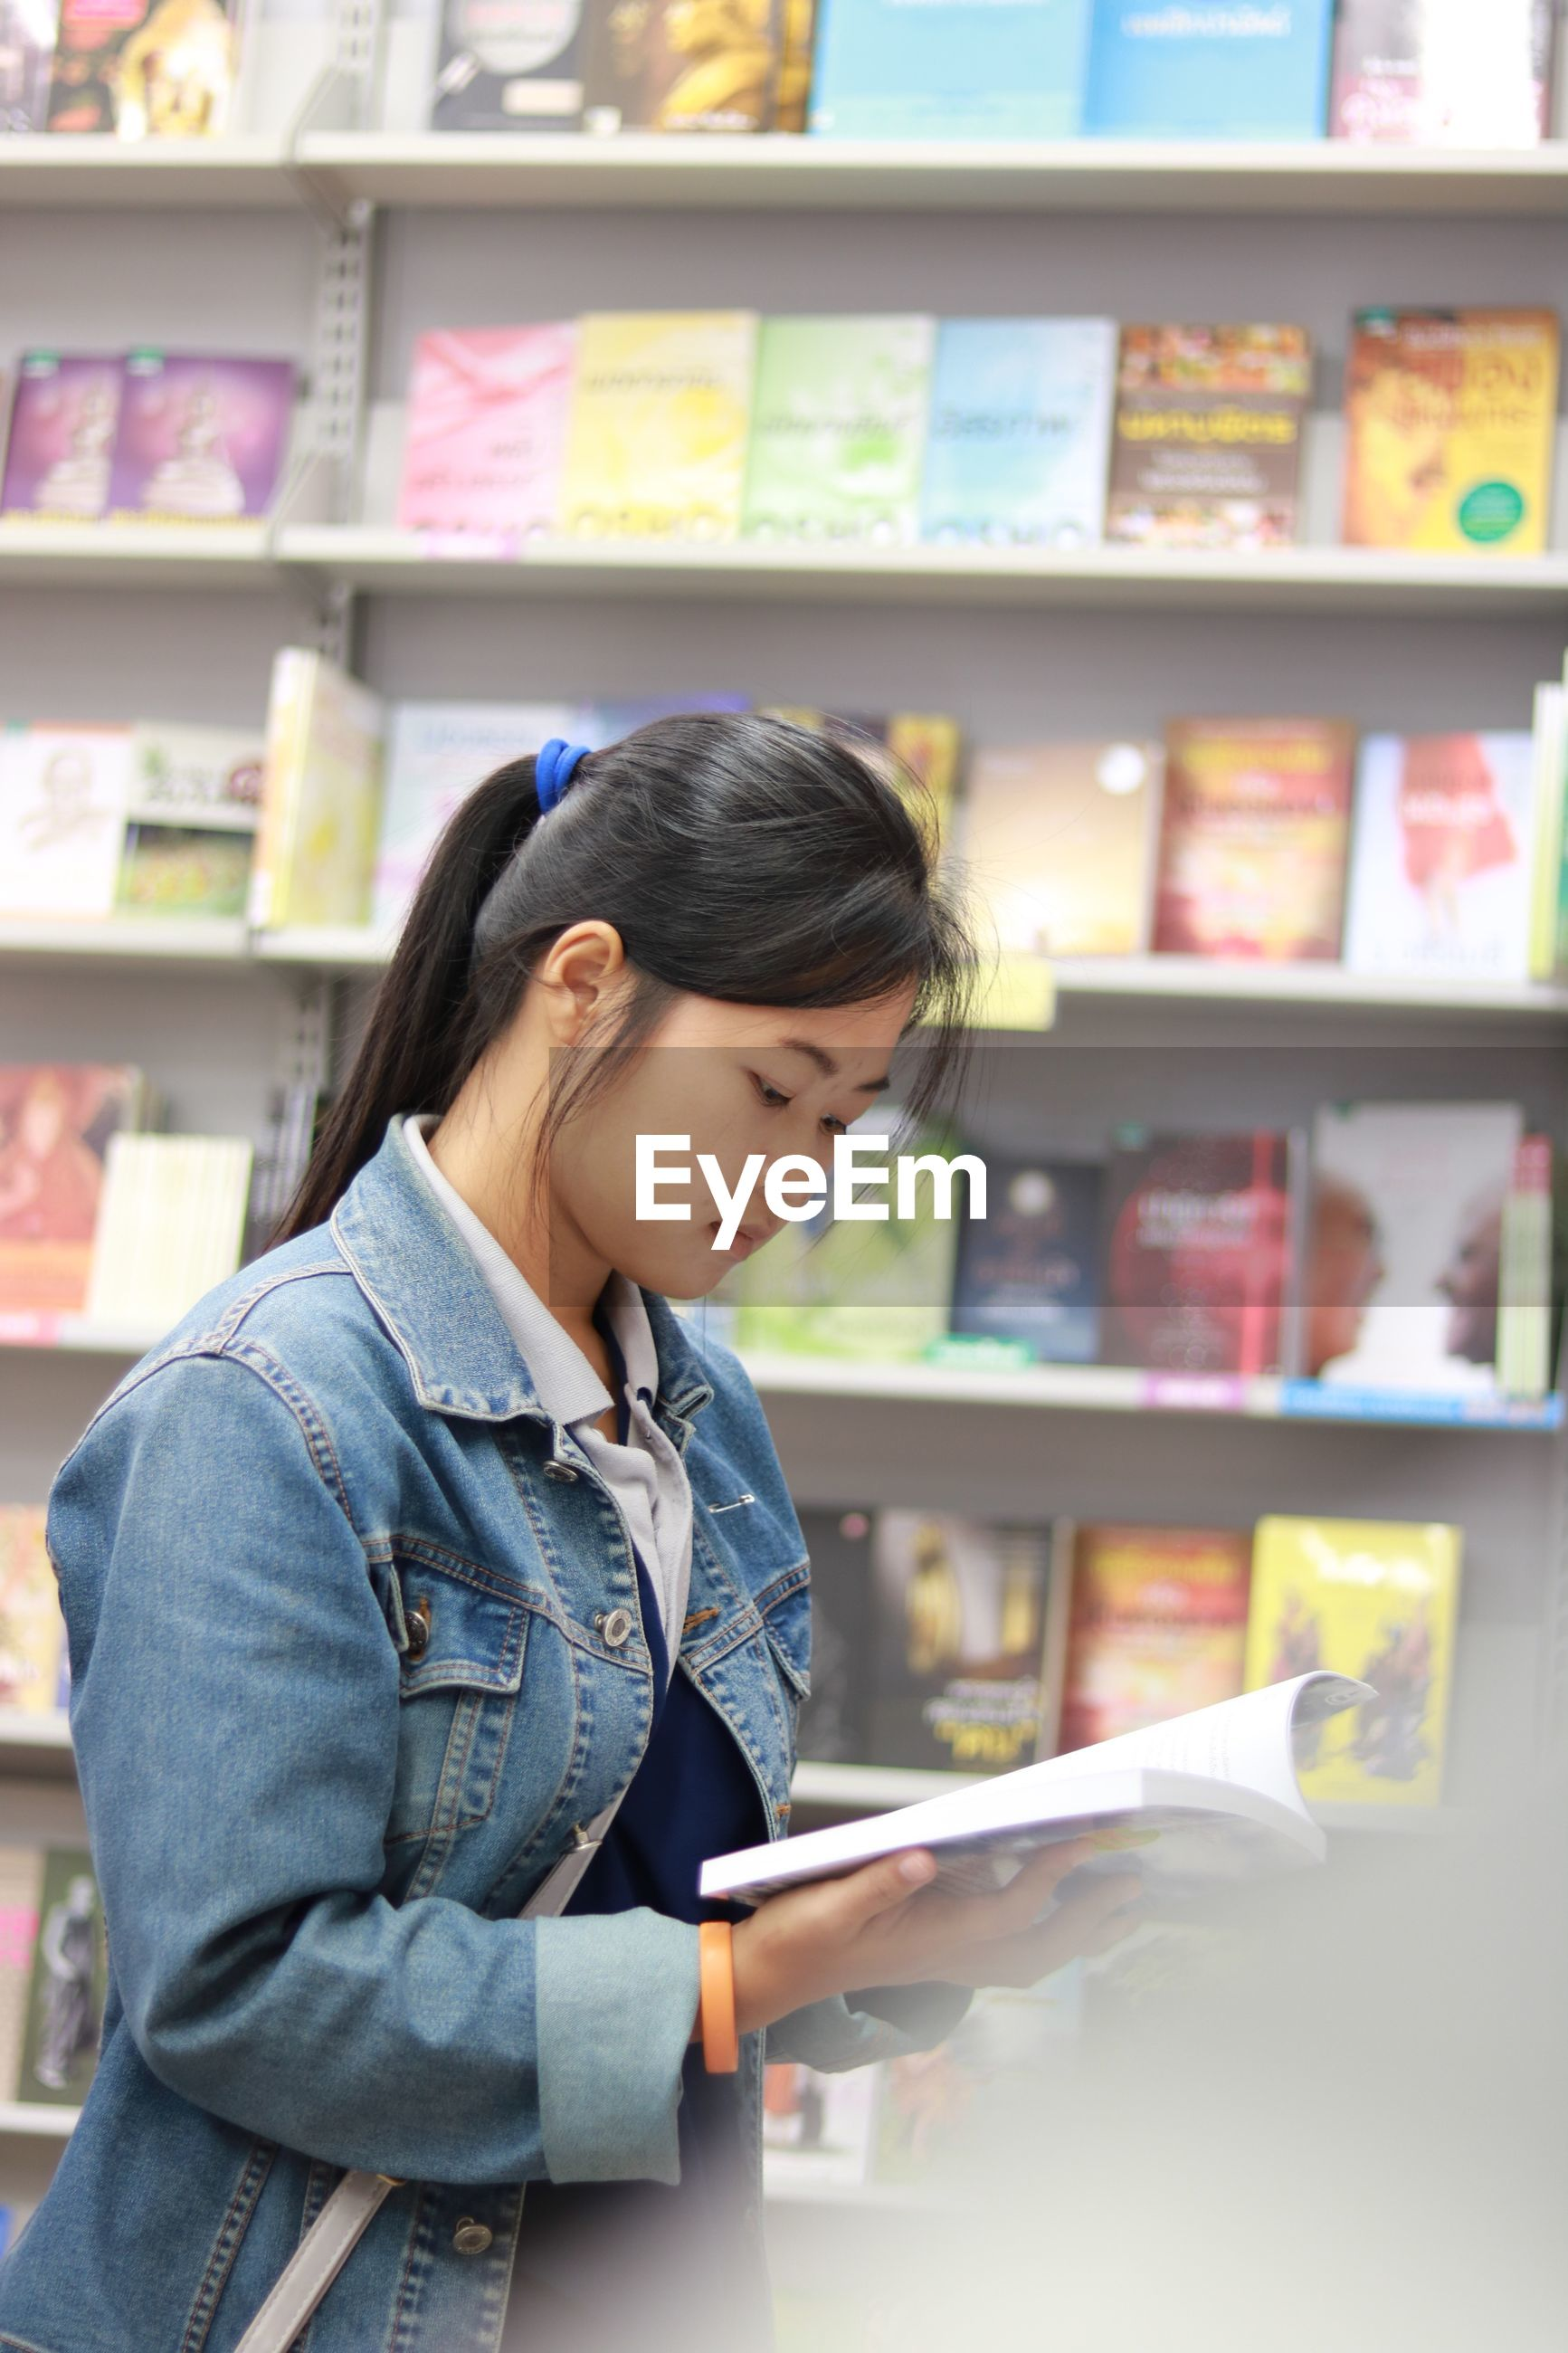 Side view of woman reading book while standing in store